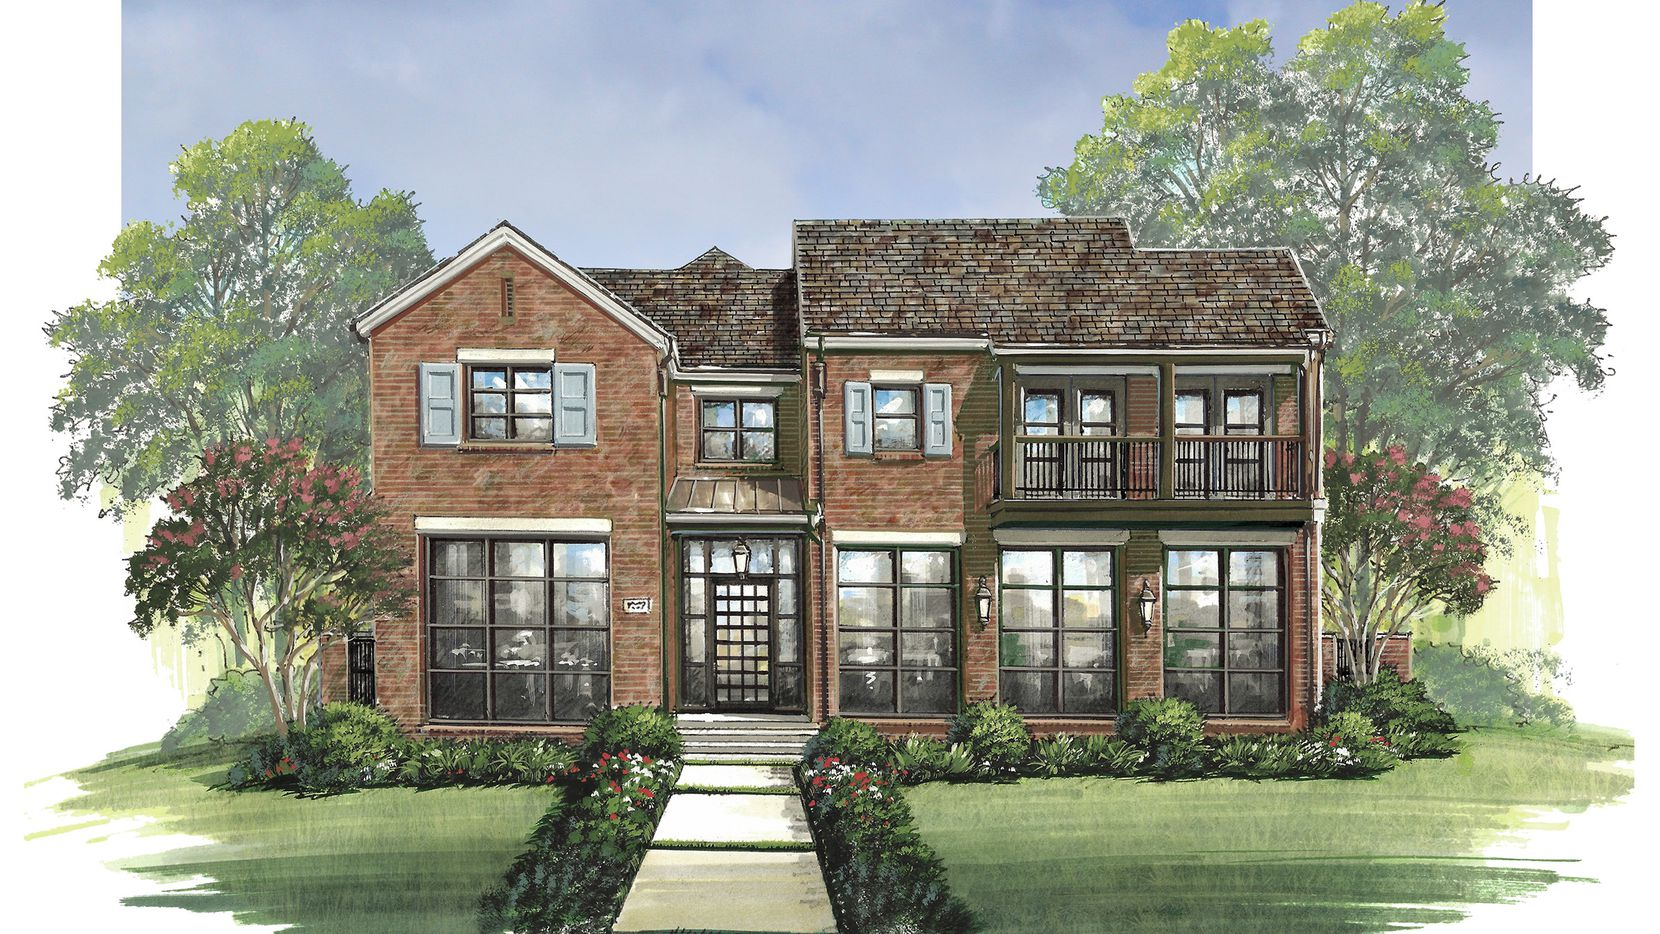 Alford Homes' design at 3700 Bryn Mawr Drive, pictured in this rendering, is priced at $3,925,000 and should be completed this fall. It is available for touring from 1 to 5 p.m. today.